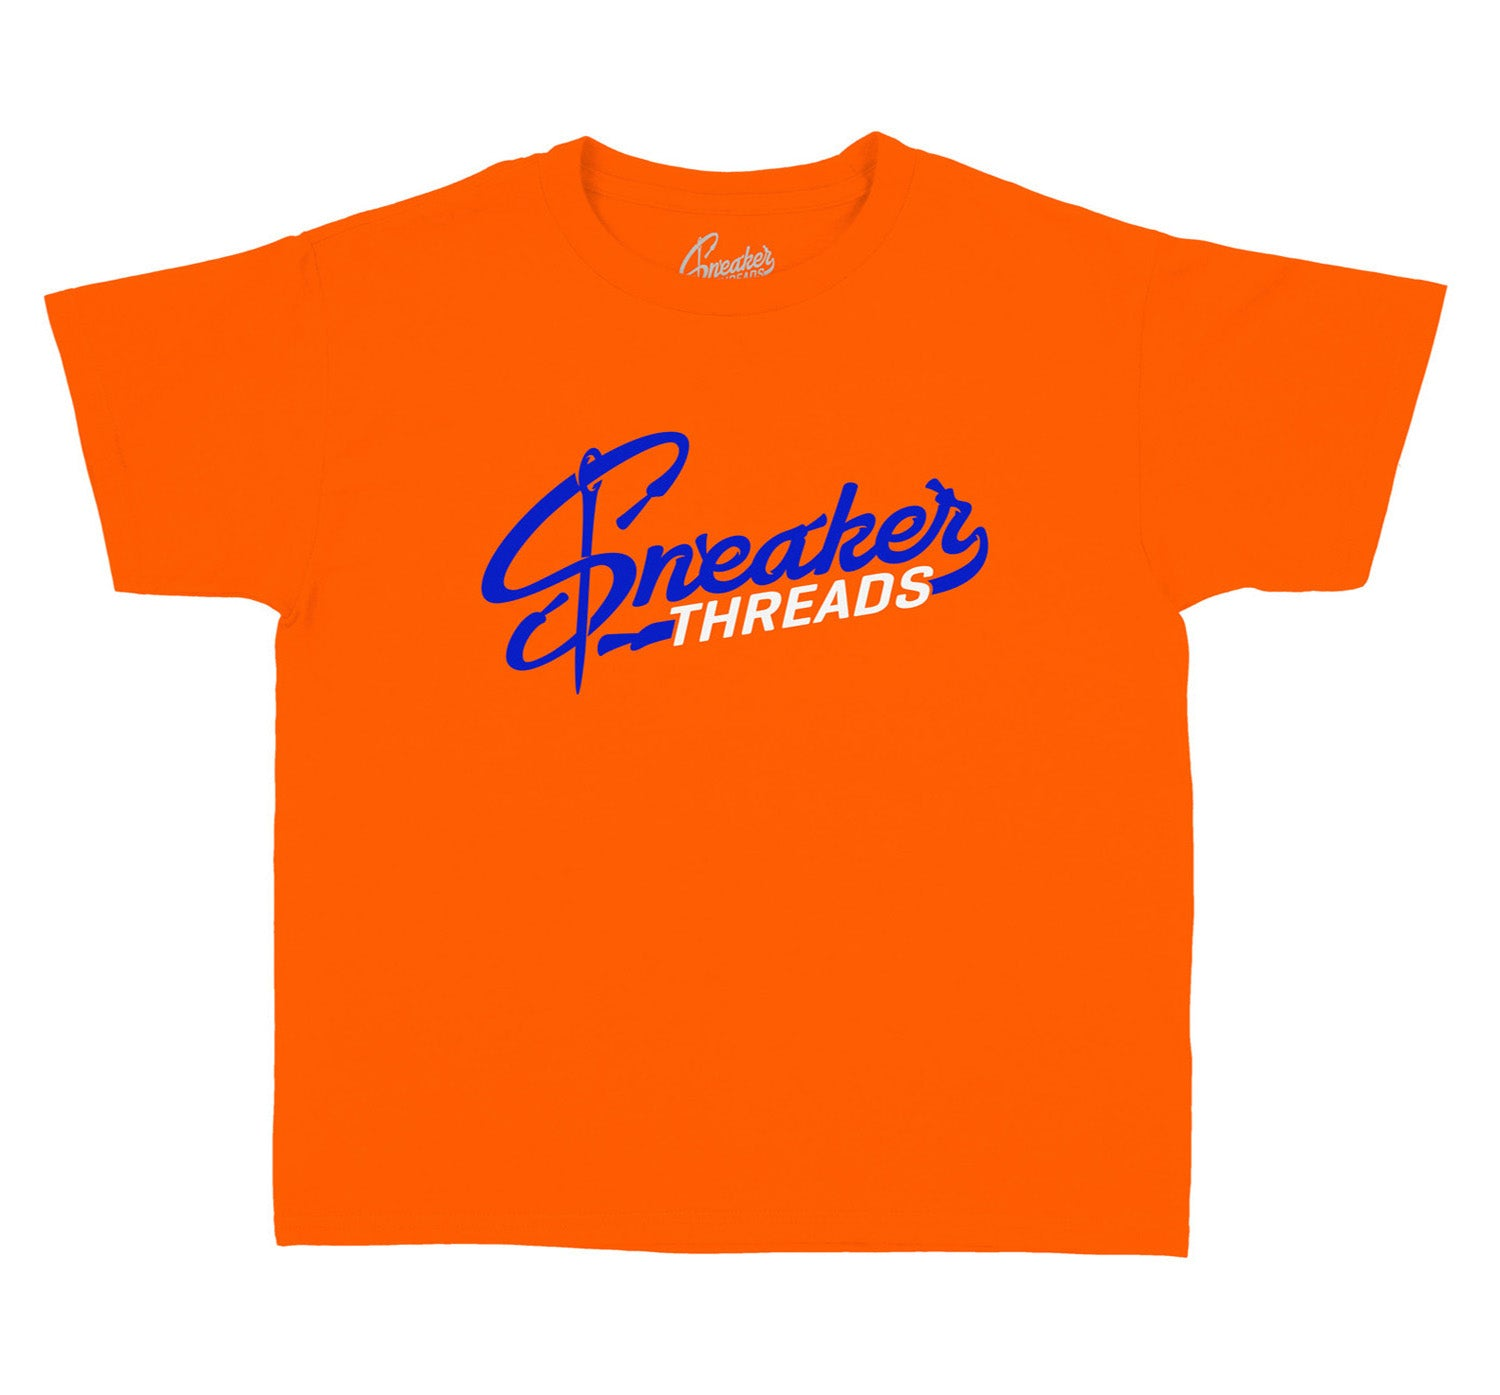 Jordan 3 knicks kids sneaker has matching kids t shirts designed to match perfect with the kids knicks